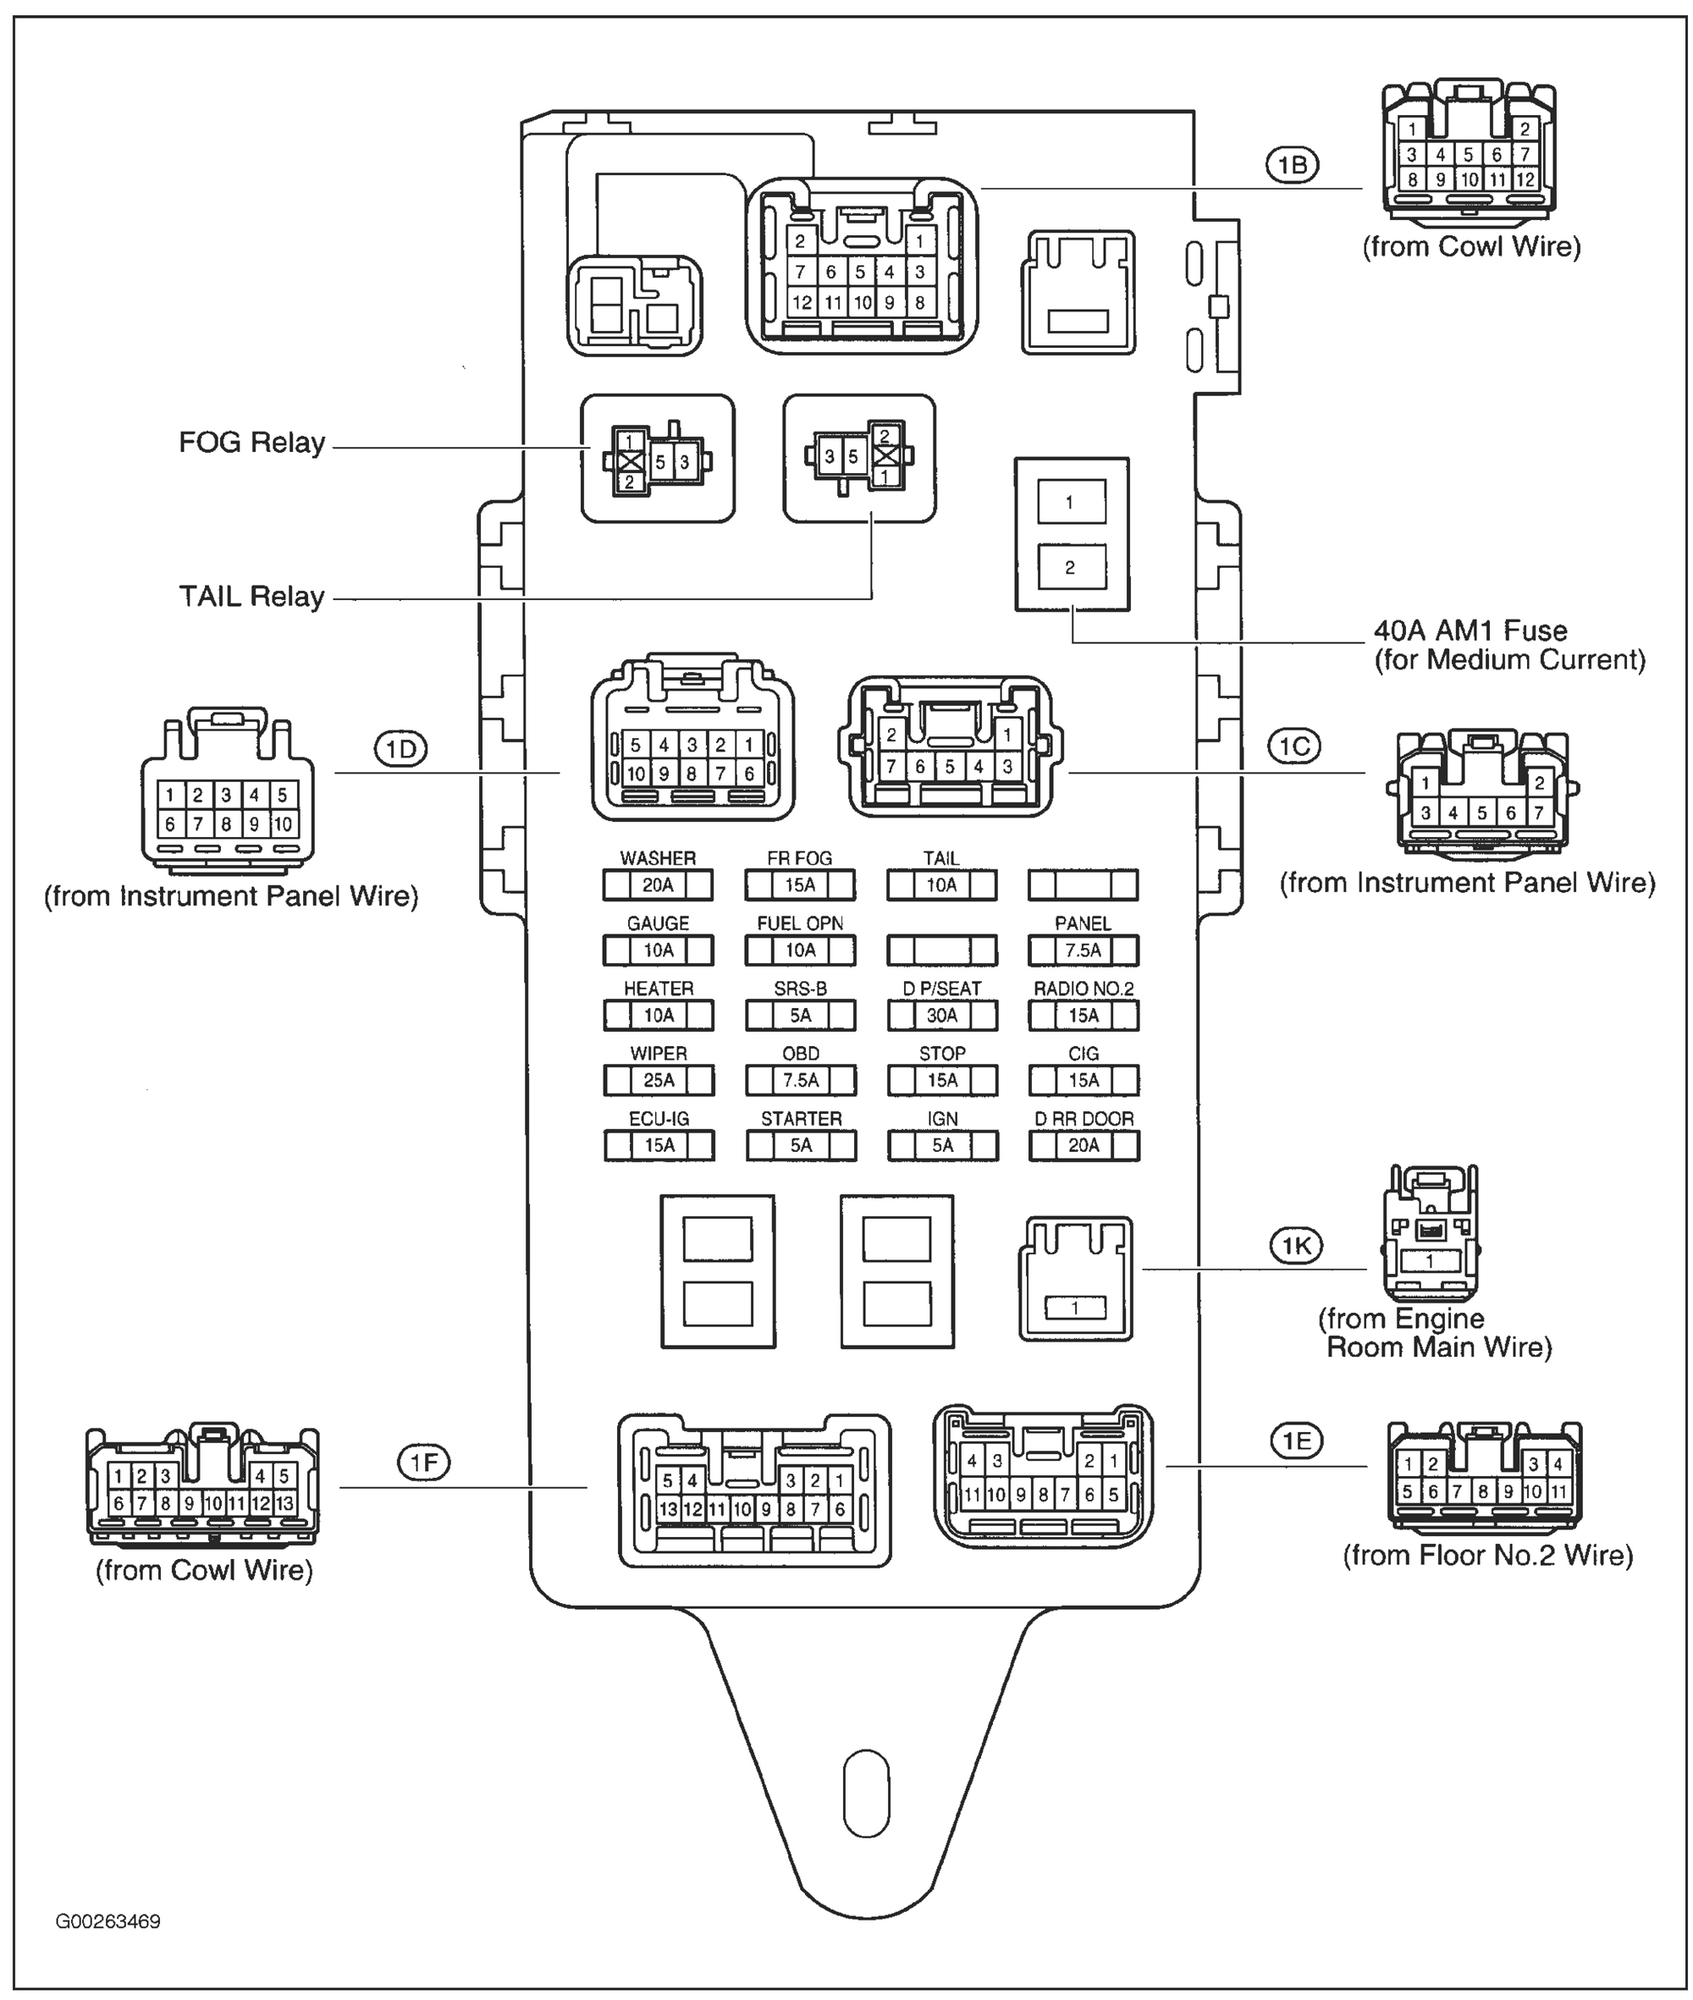 93 Lexus Gs300 Fuse Diagram